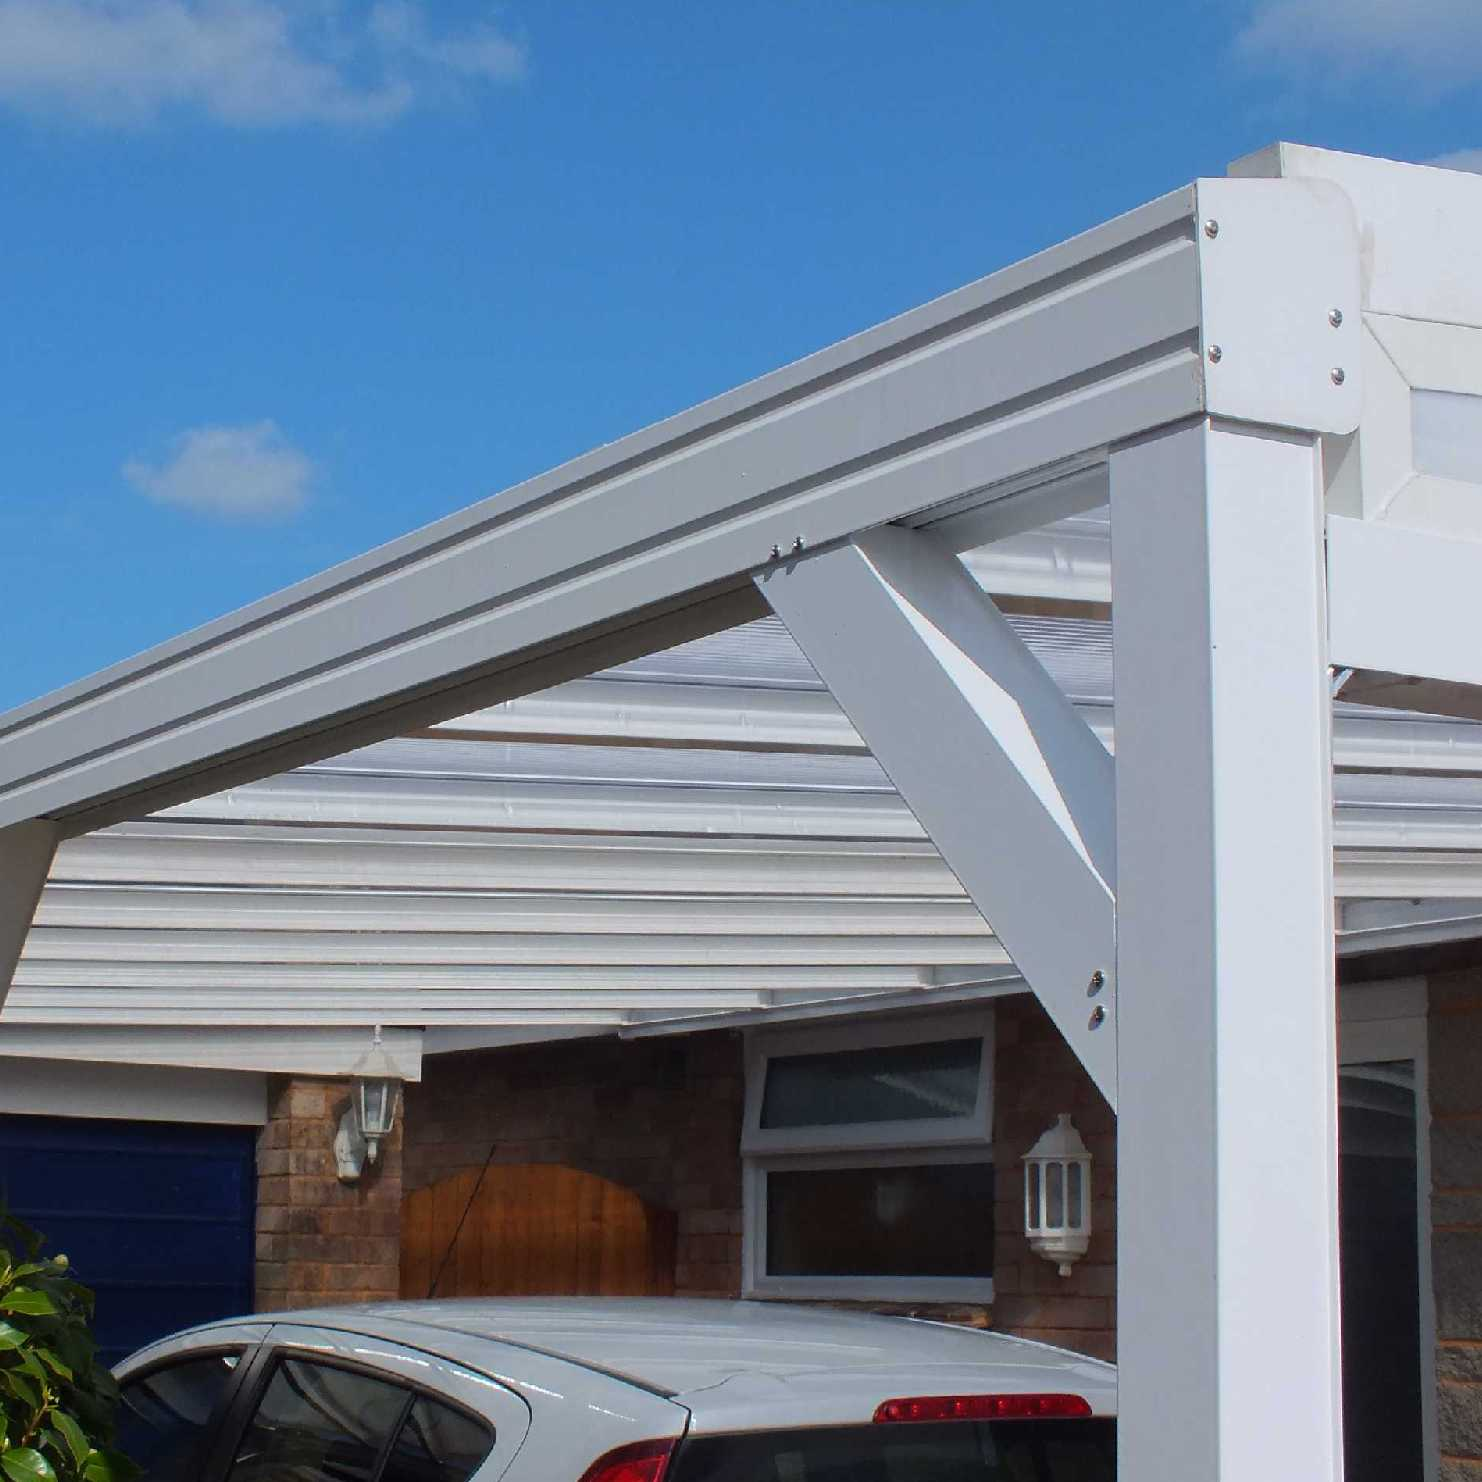 Great deals on Omega Smart White Lean-To Canopy with 16mm Polycarbonate Glazing - 10.6m (W) x 2.5m (P), (5) Supporting Posts